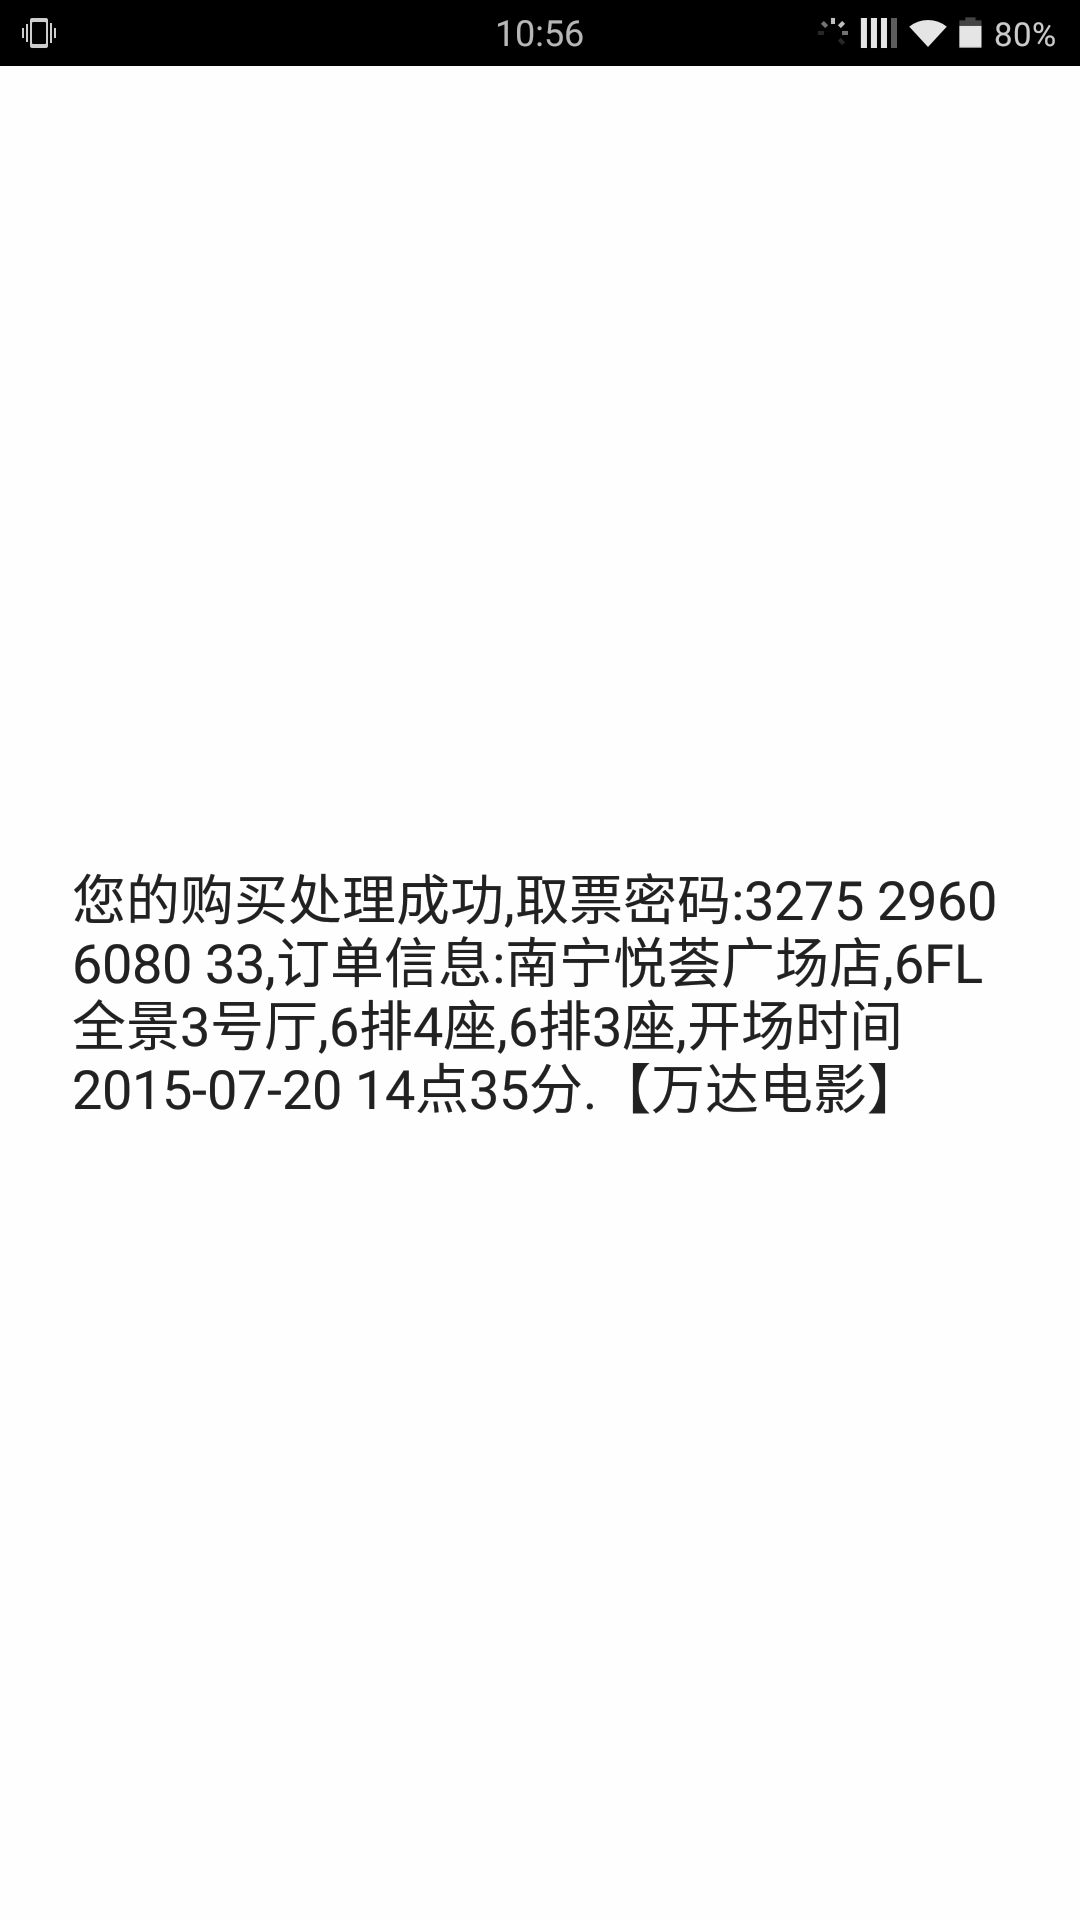 Screenshot_2015-07-22-10-56-14.png